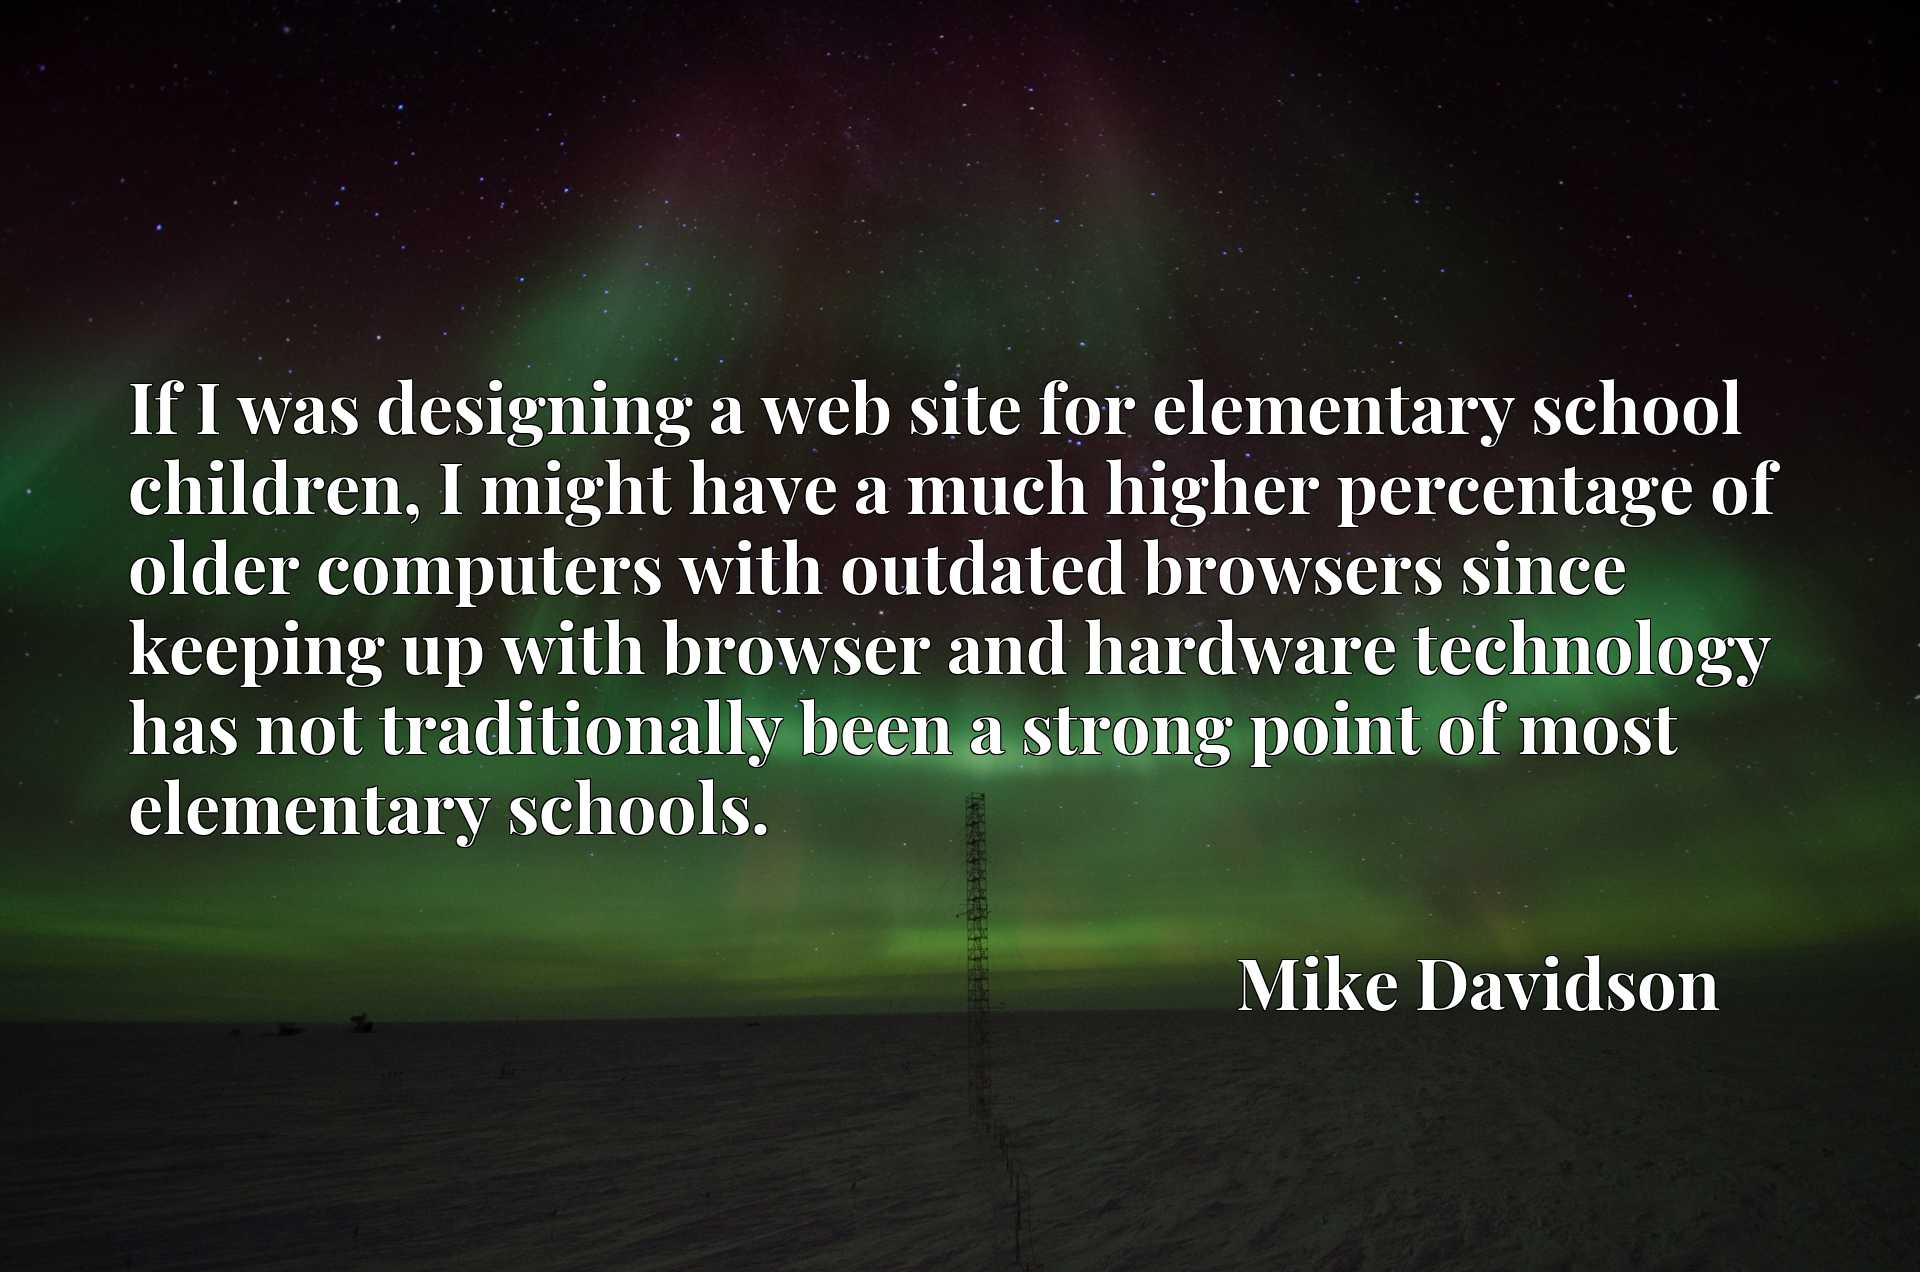 If I was designing a web site for elementary school children, I might have a much higher percentage of older computers with outdated browsers since keeping up with browser and hardware technology has not traditionally been a strong point of most elementary schools.